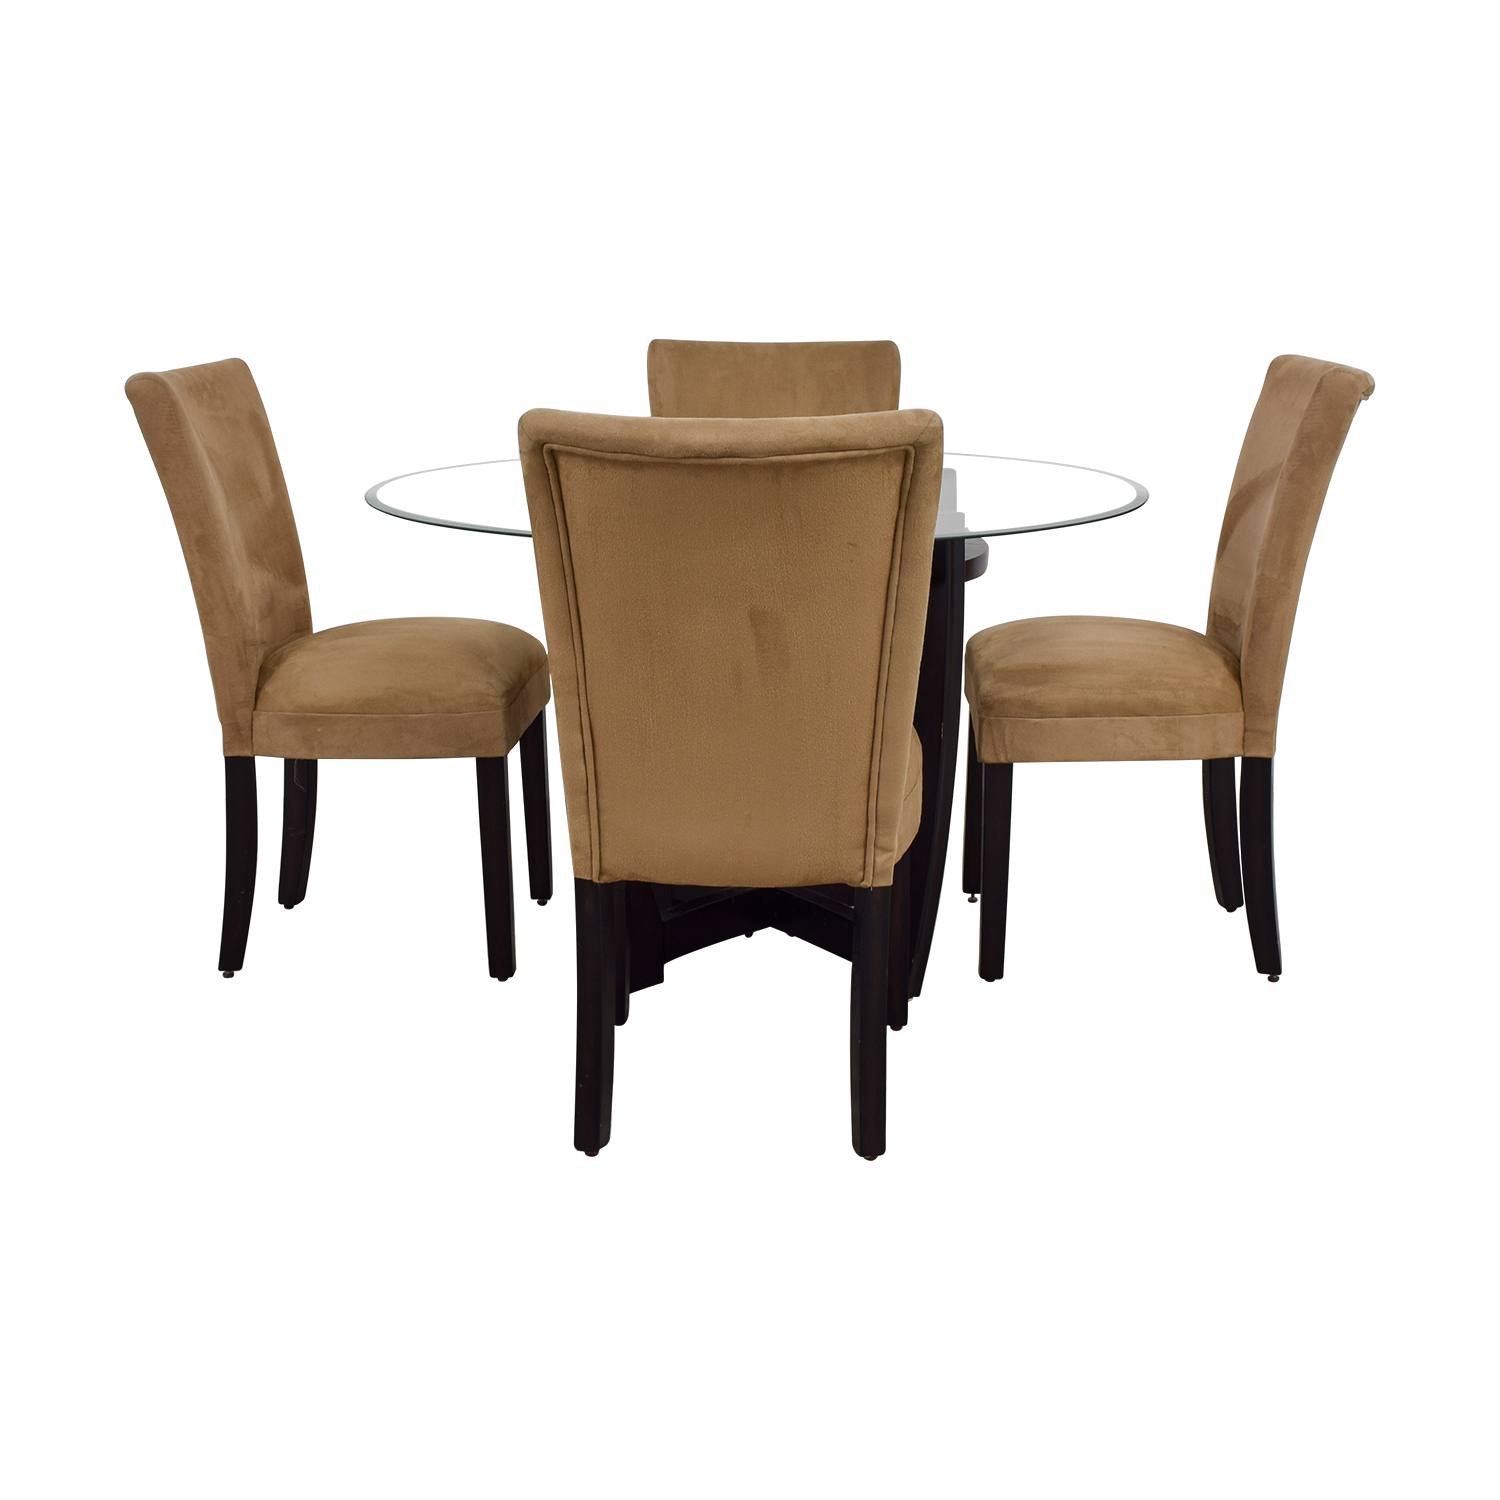 buy Coaster Coaster Round Glass Dining Set with Tan Chairs online